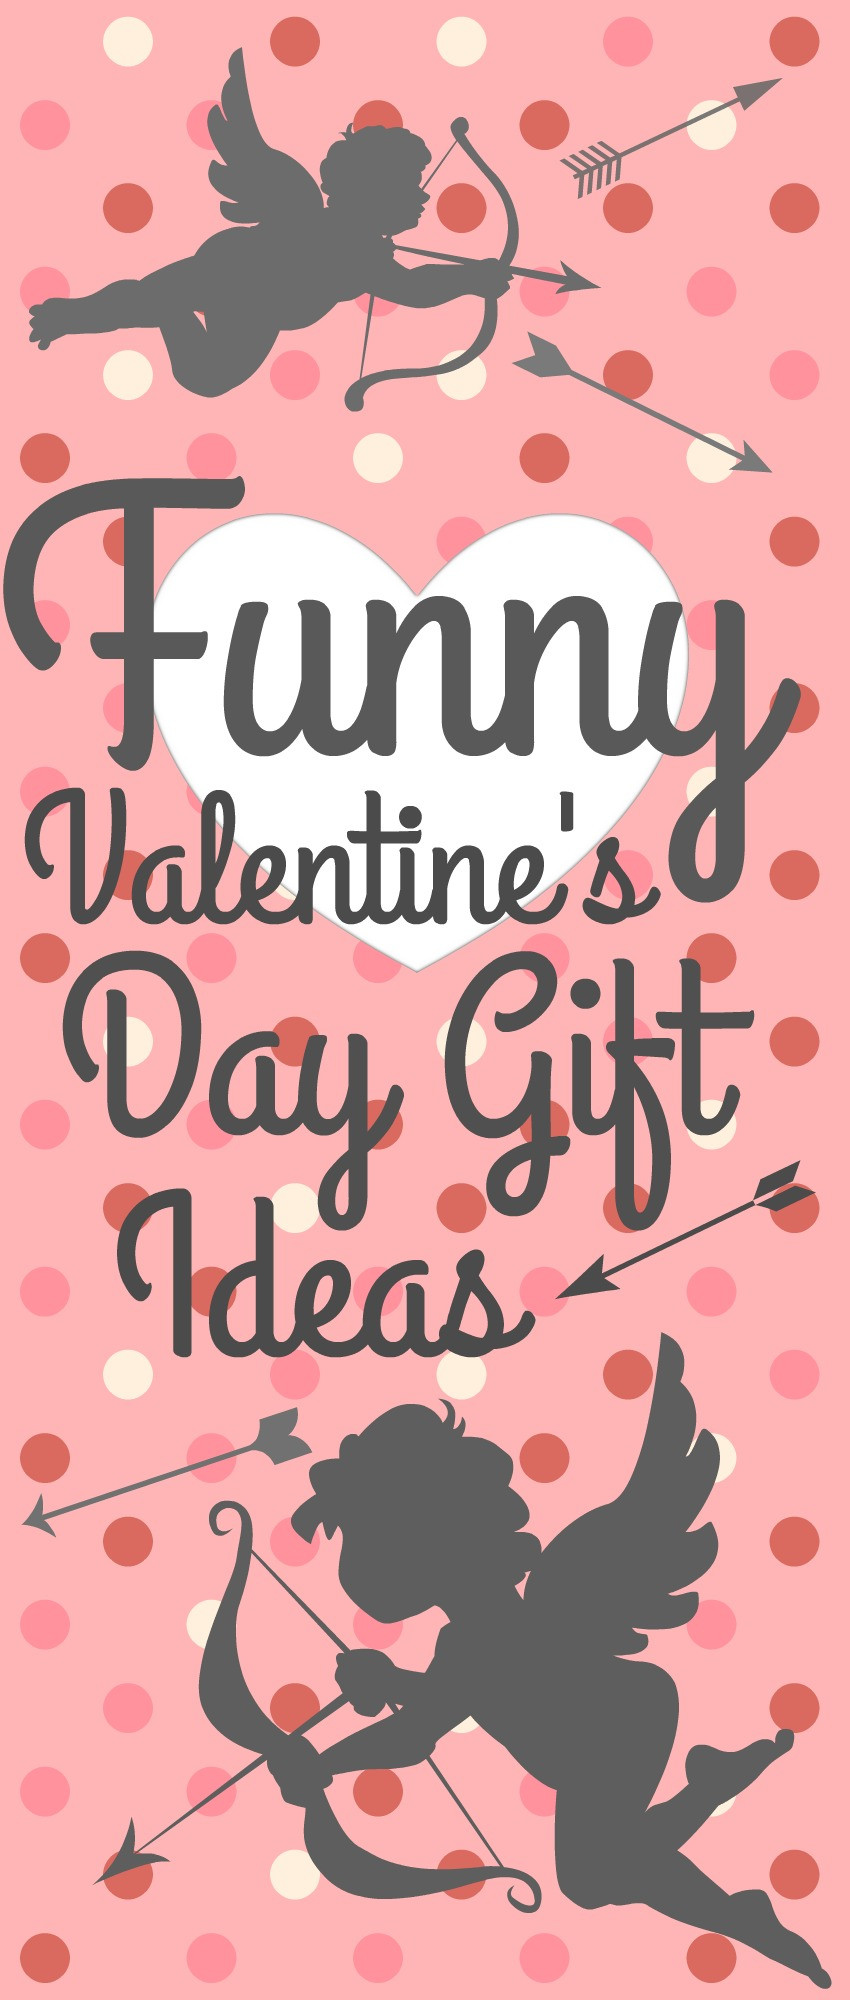 Funny Valentines Day Gifts  Funny Valentine s Day Gifts